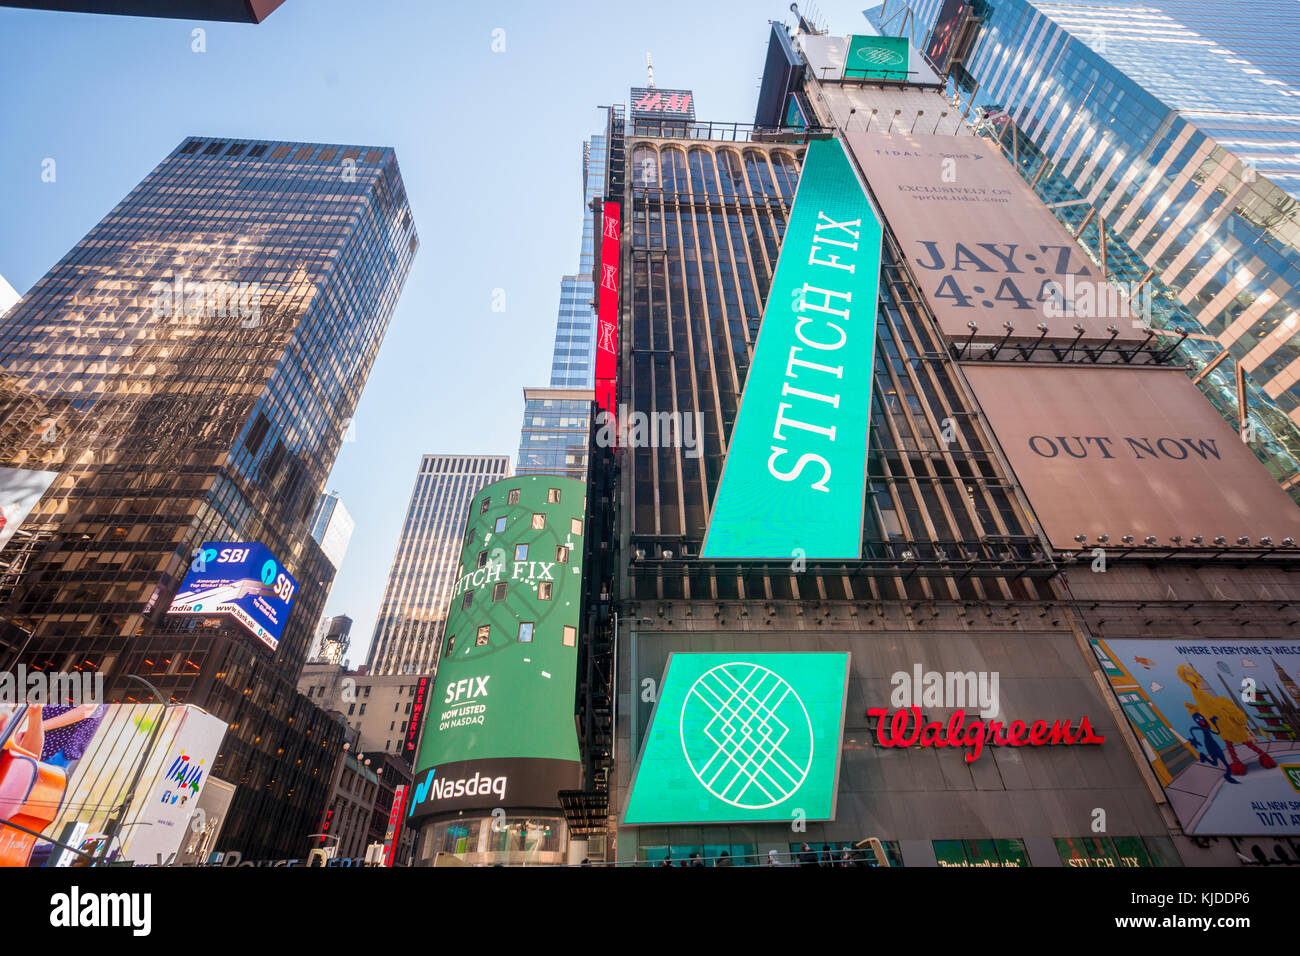 Video screens in Times Square display advertising for the first day of sale of the Stitch Fix initial public offering - Stock Image